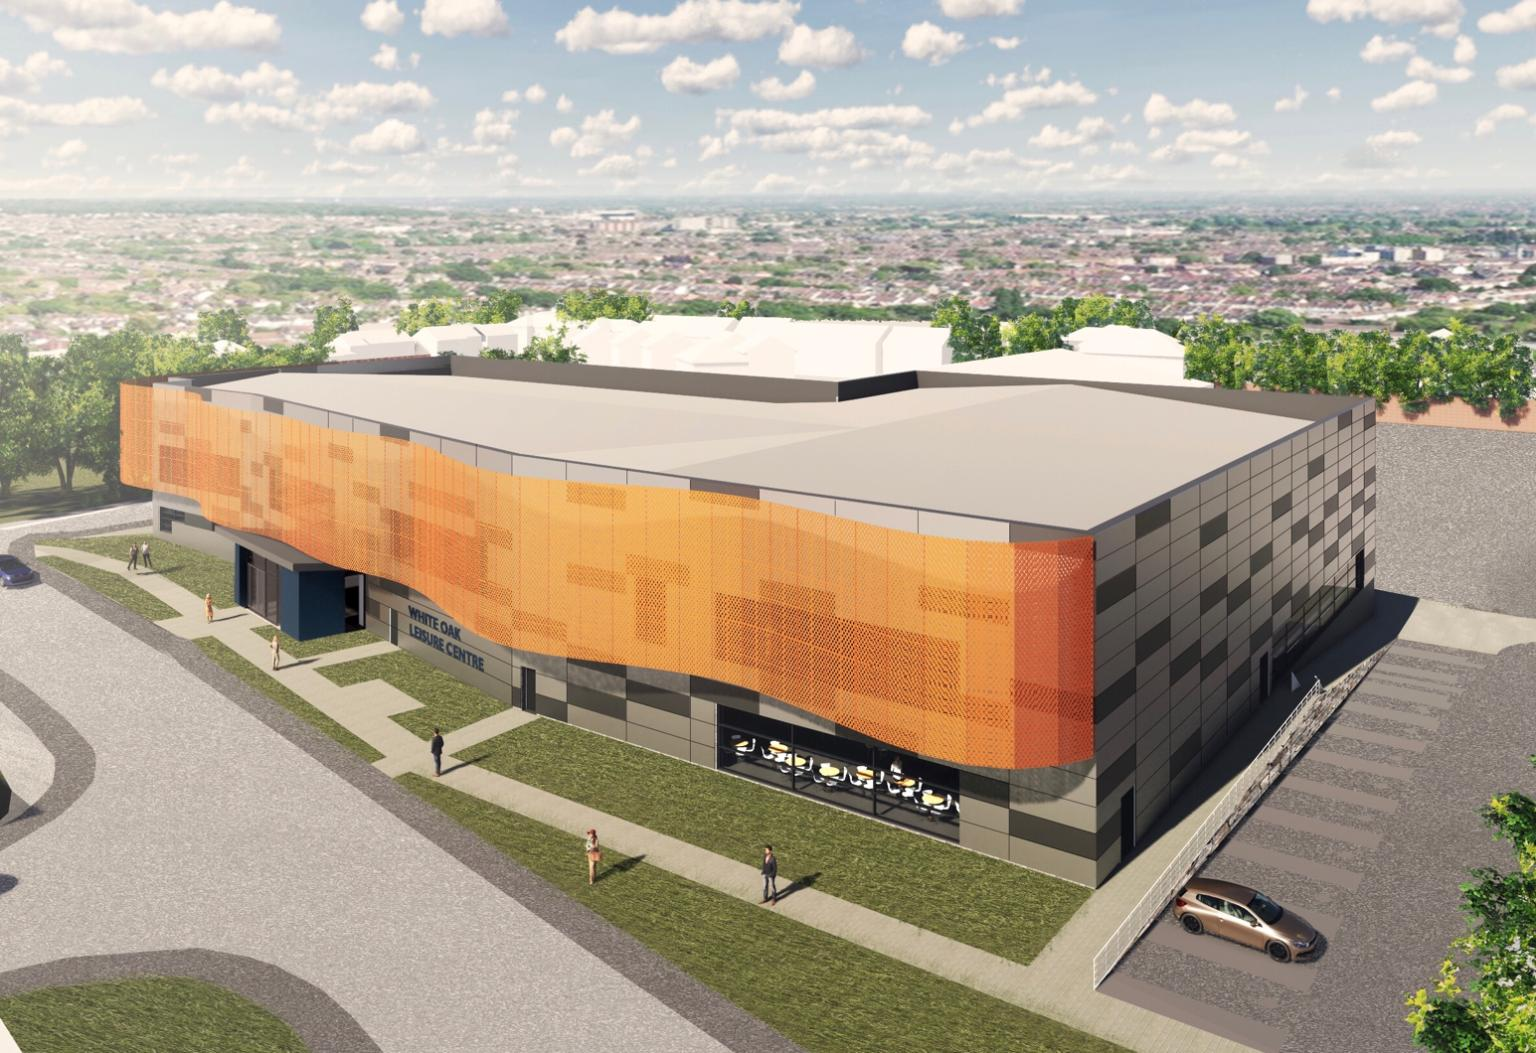 £20m New Build White Oak Leisure Centre Project Approved